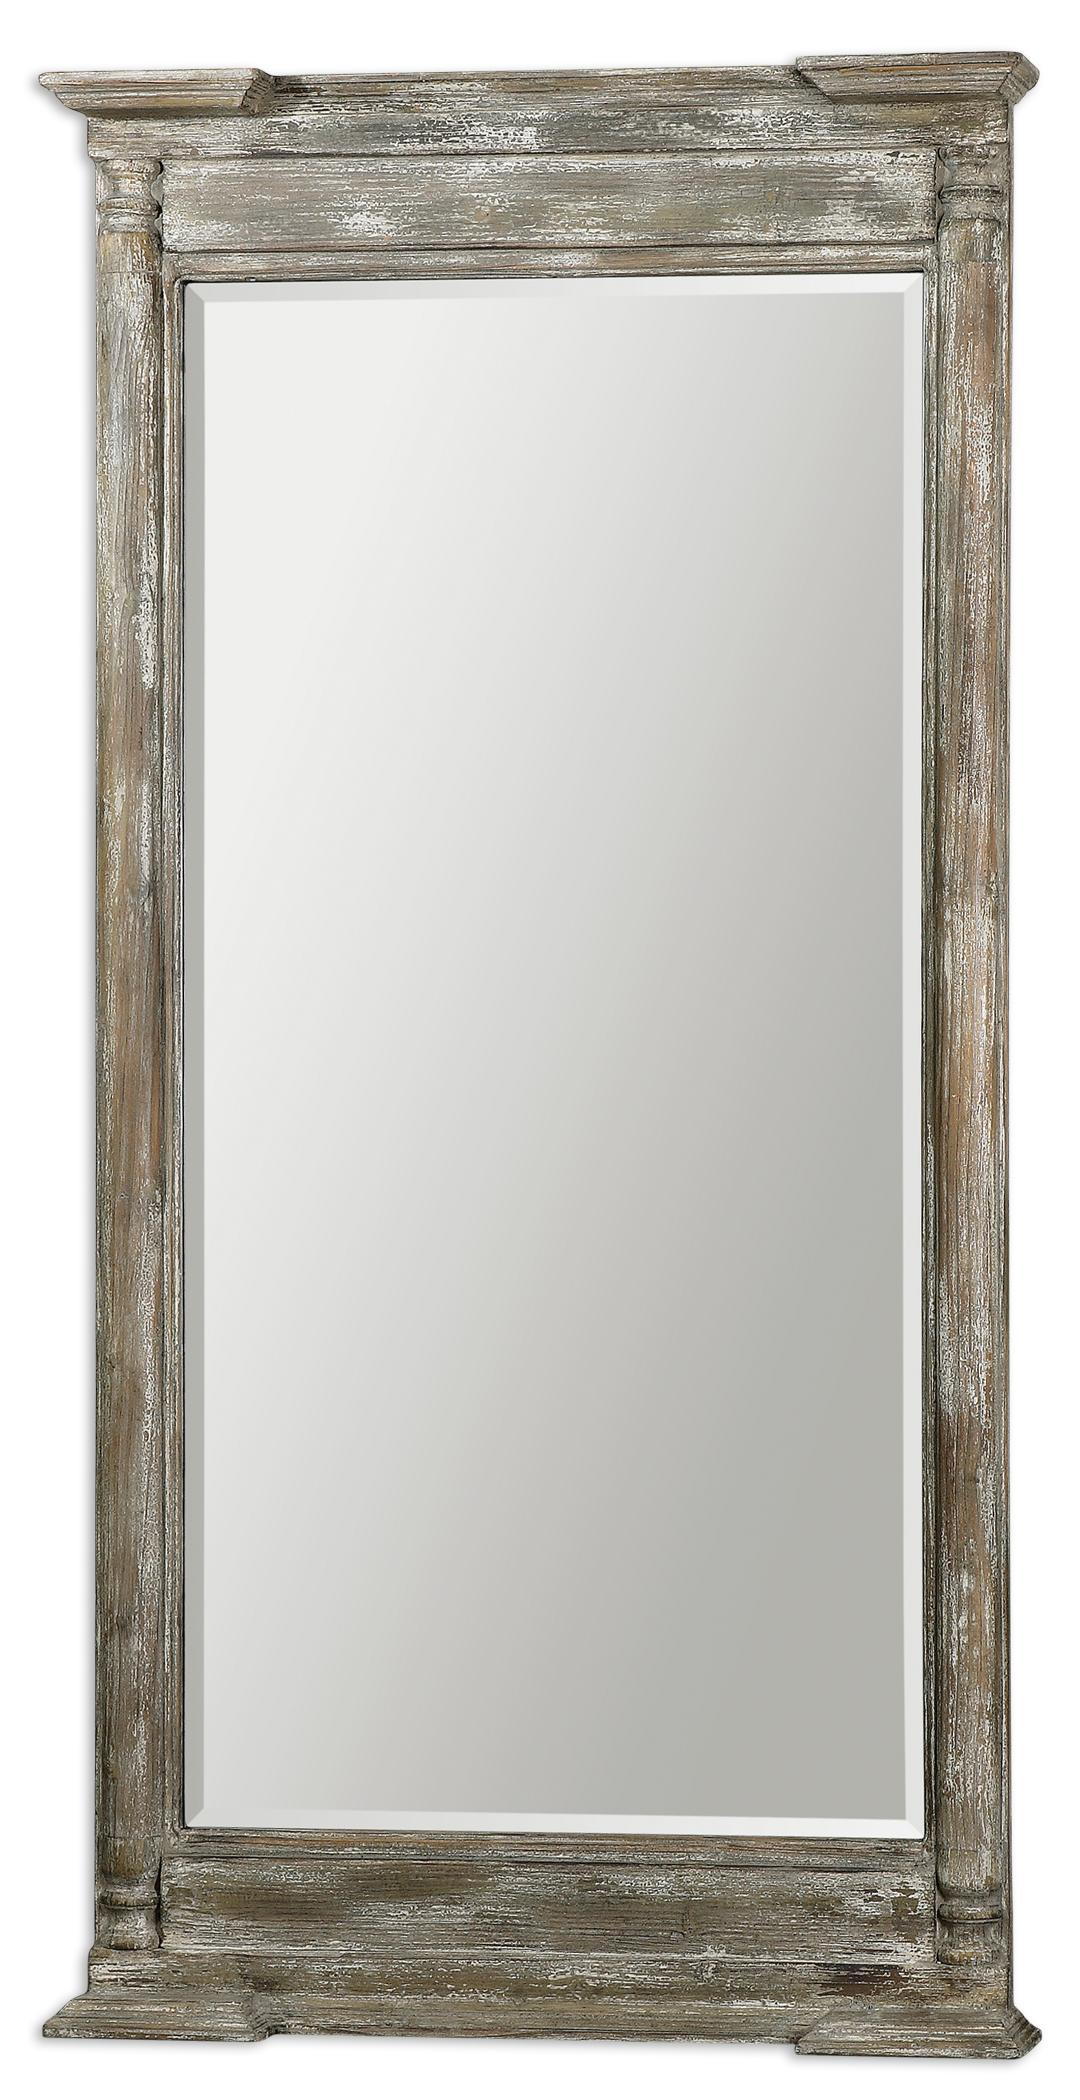 Uttermost Mirrors Valcellina Wooden Leaner Mirror - Item Number: 07652